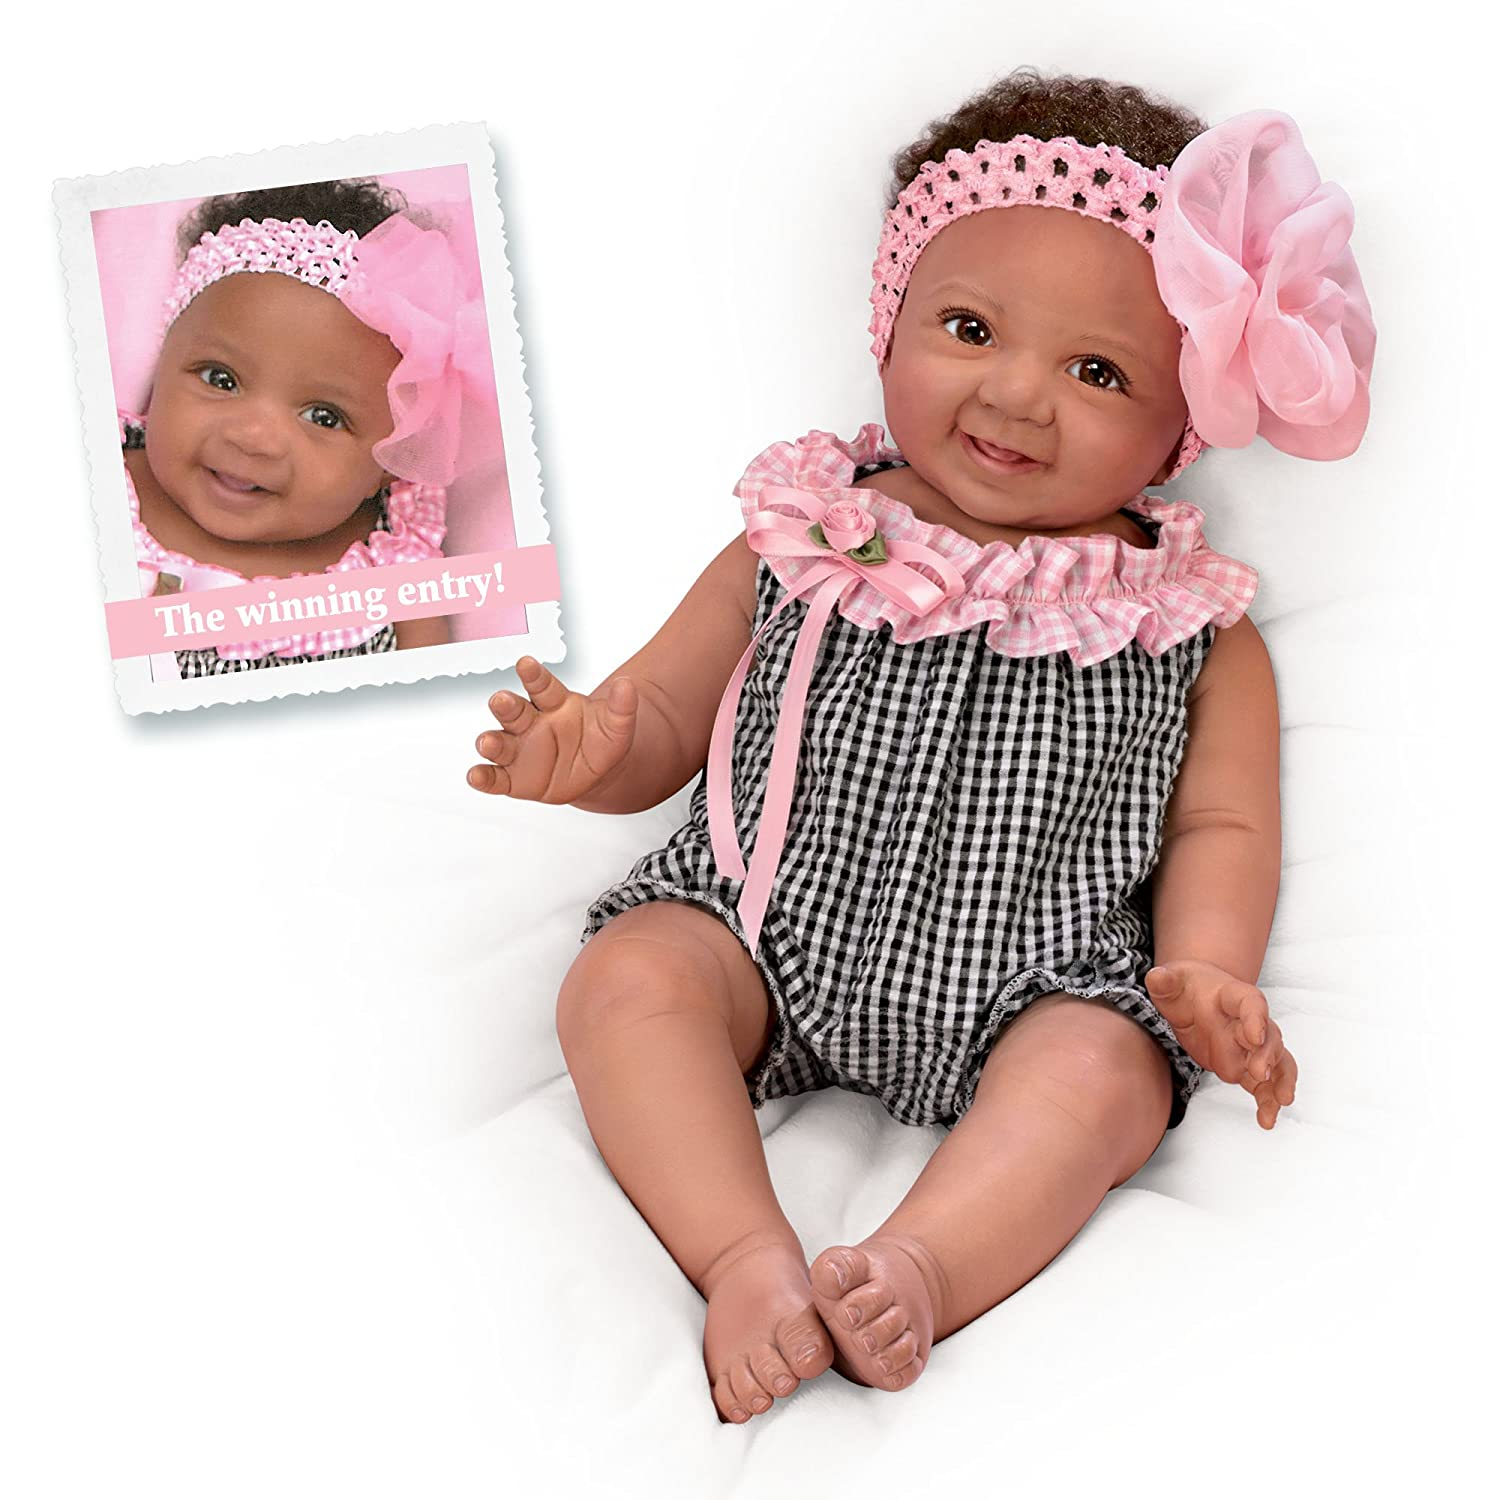 The Ashton - Drake Galleries So Truly Real® Newborn Baby Doll 'Alanna' – Realistic Fully Poseable RealTouch™ Vinyl Skin Lifelike Reborn Baby Doll